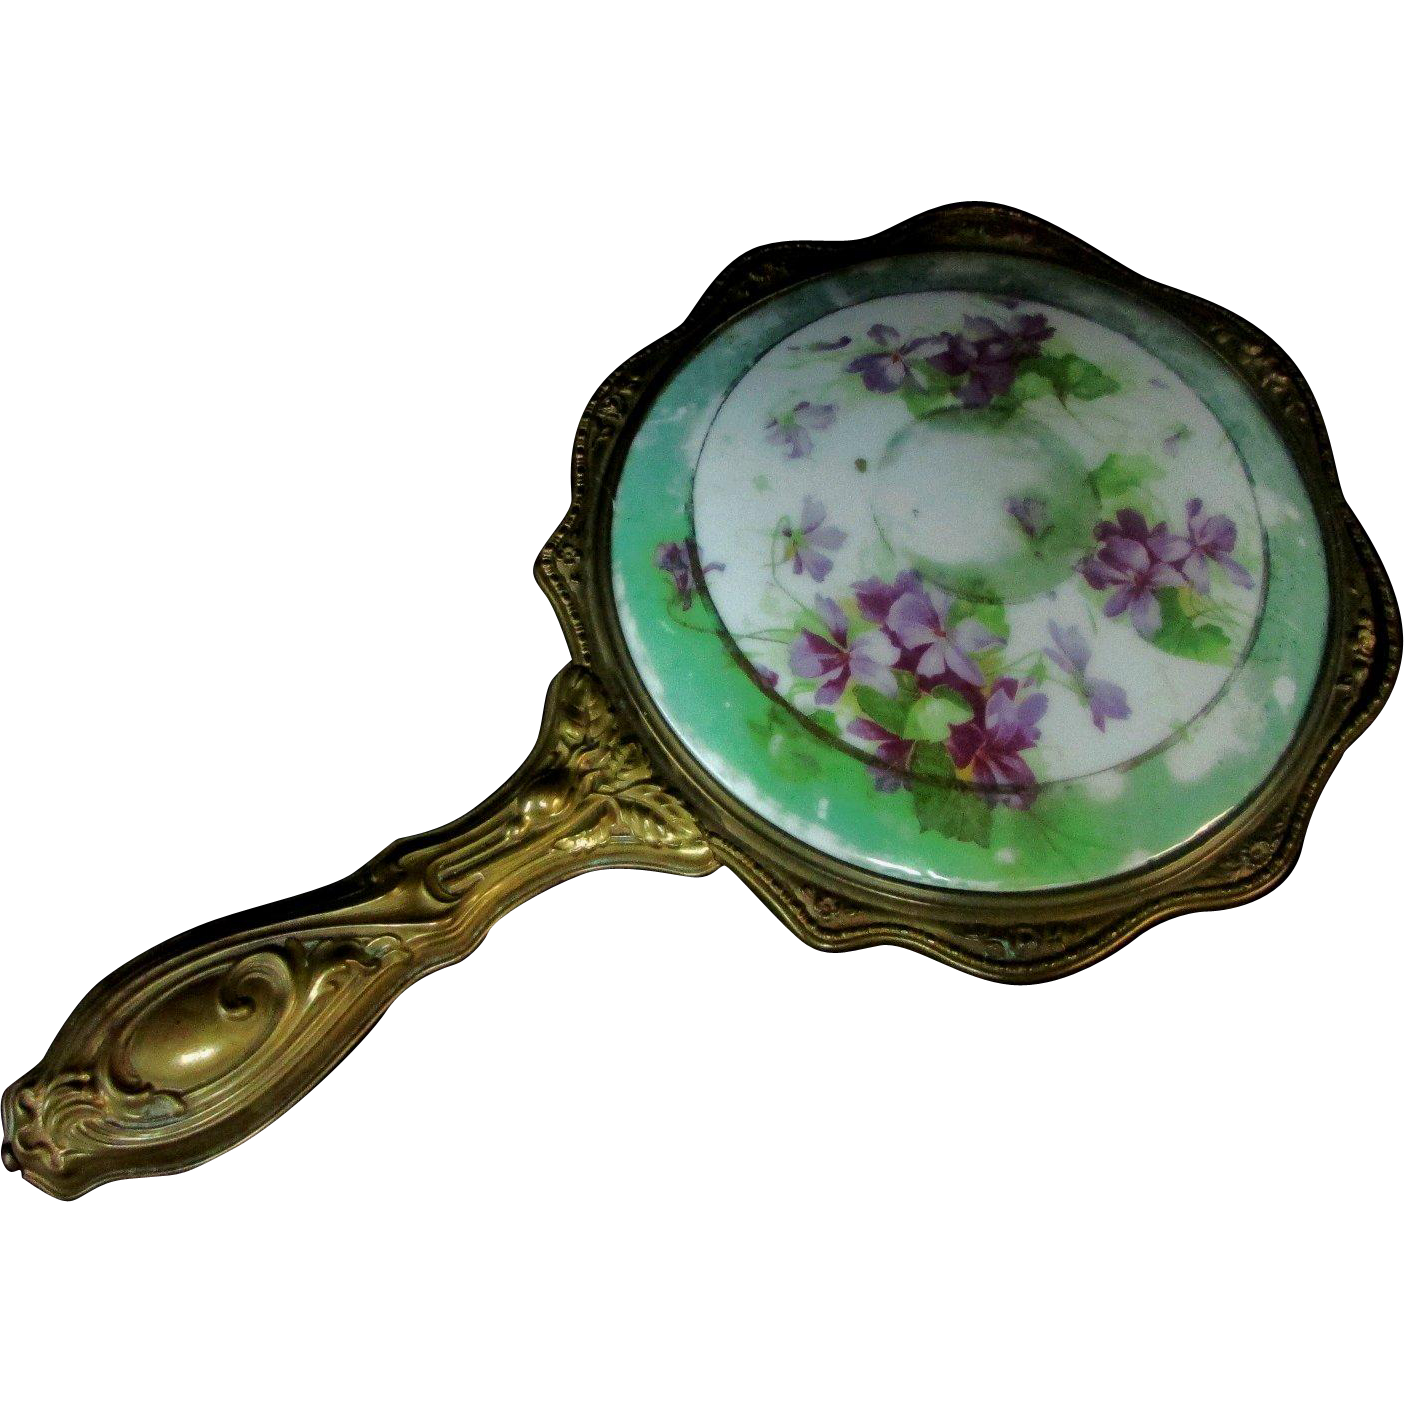 Antique Hand Held Porcelain Mirror Gold Tone Over Copper